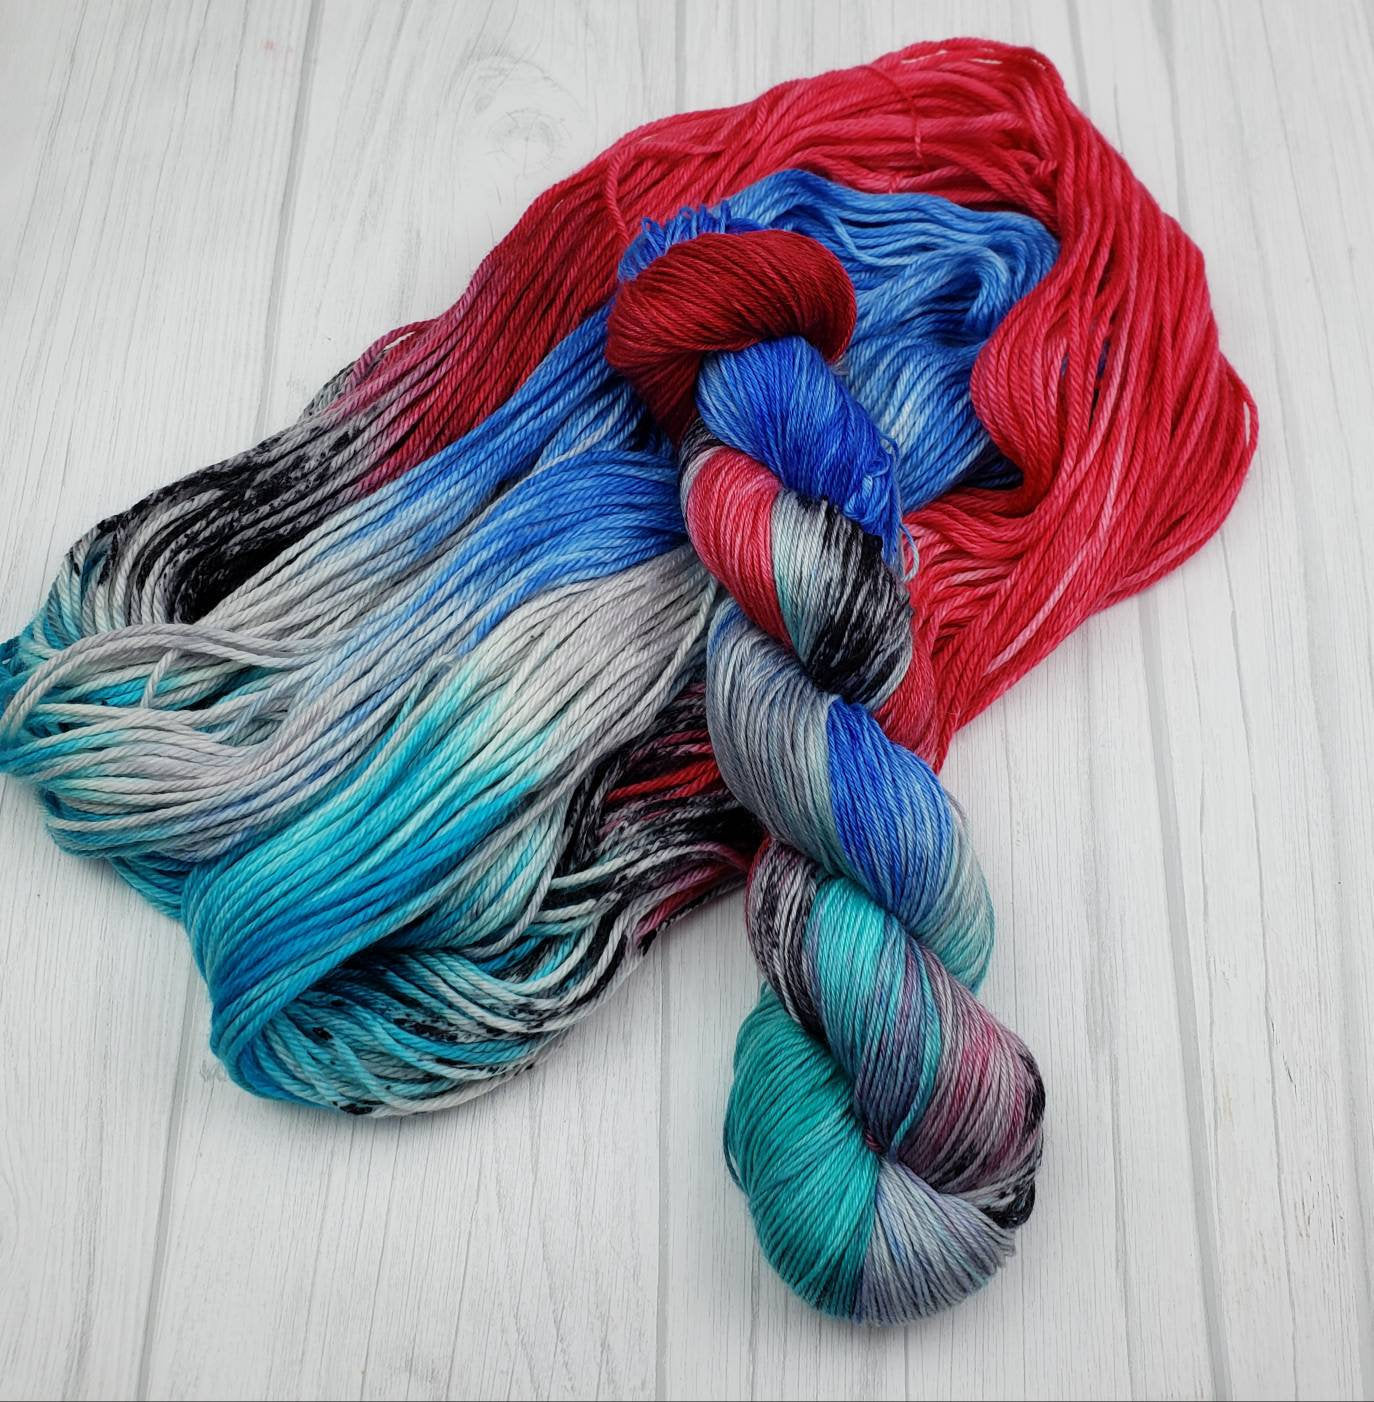 Skywalker, Hand Dyed Yarn in Sock Weight - Spindle warps yarns